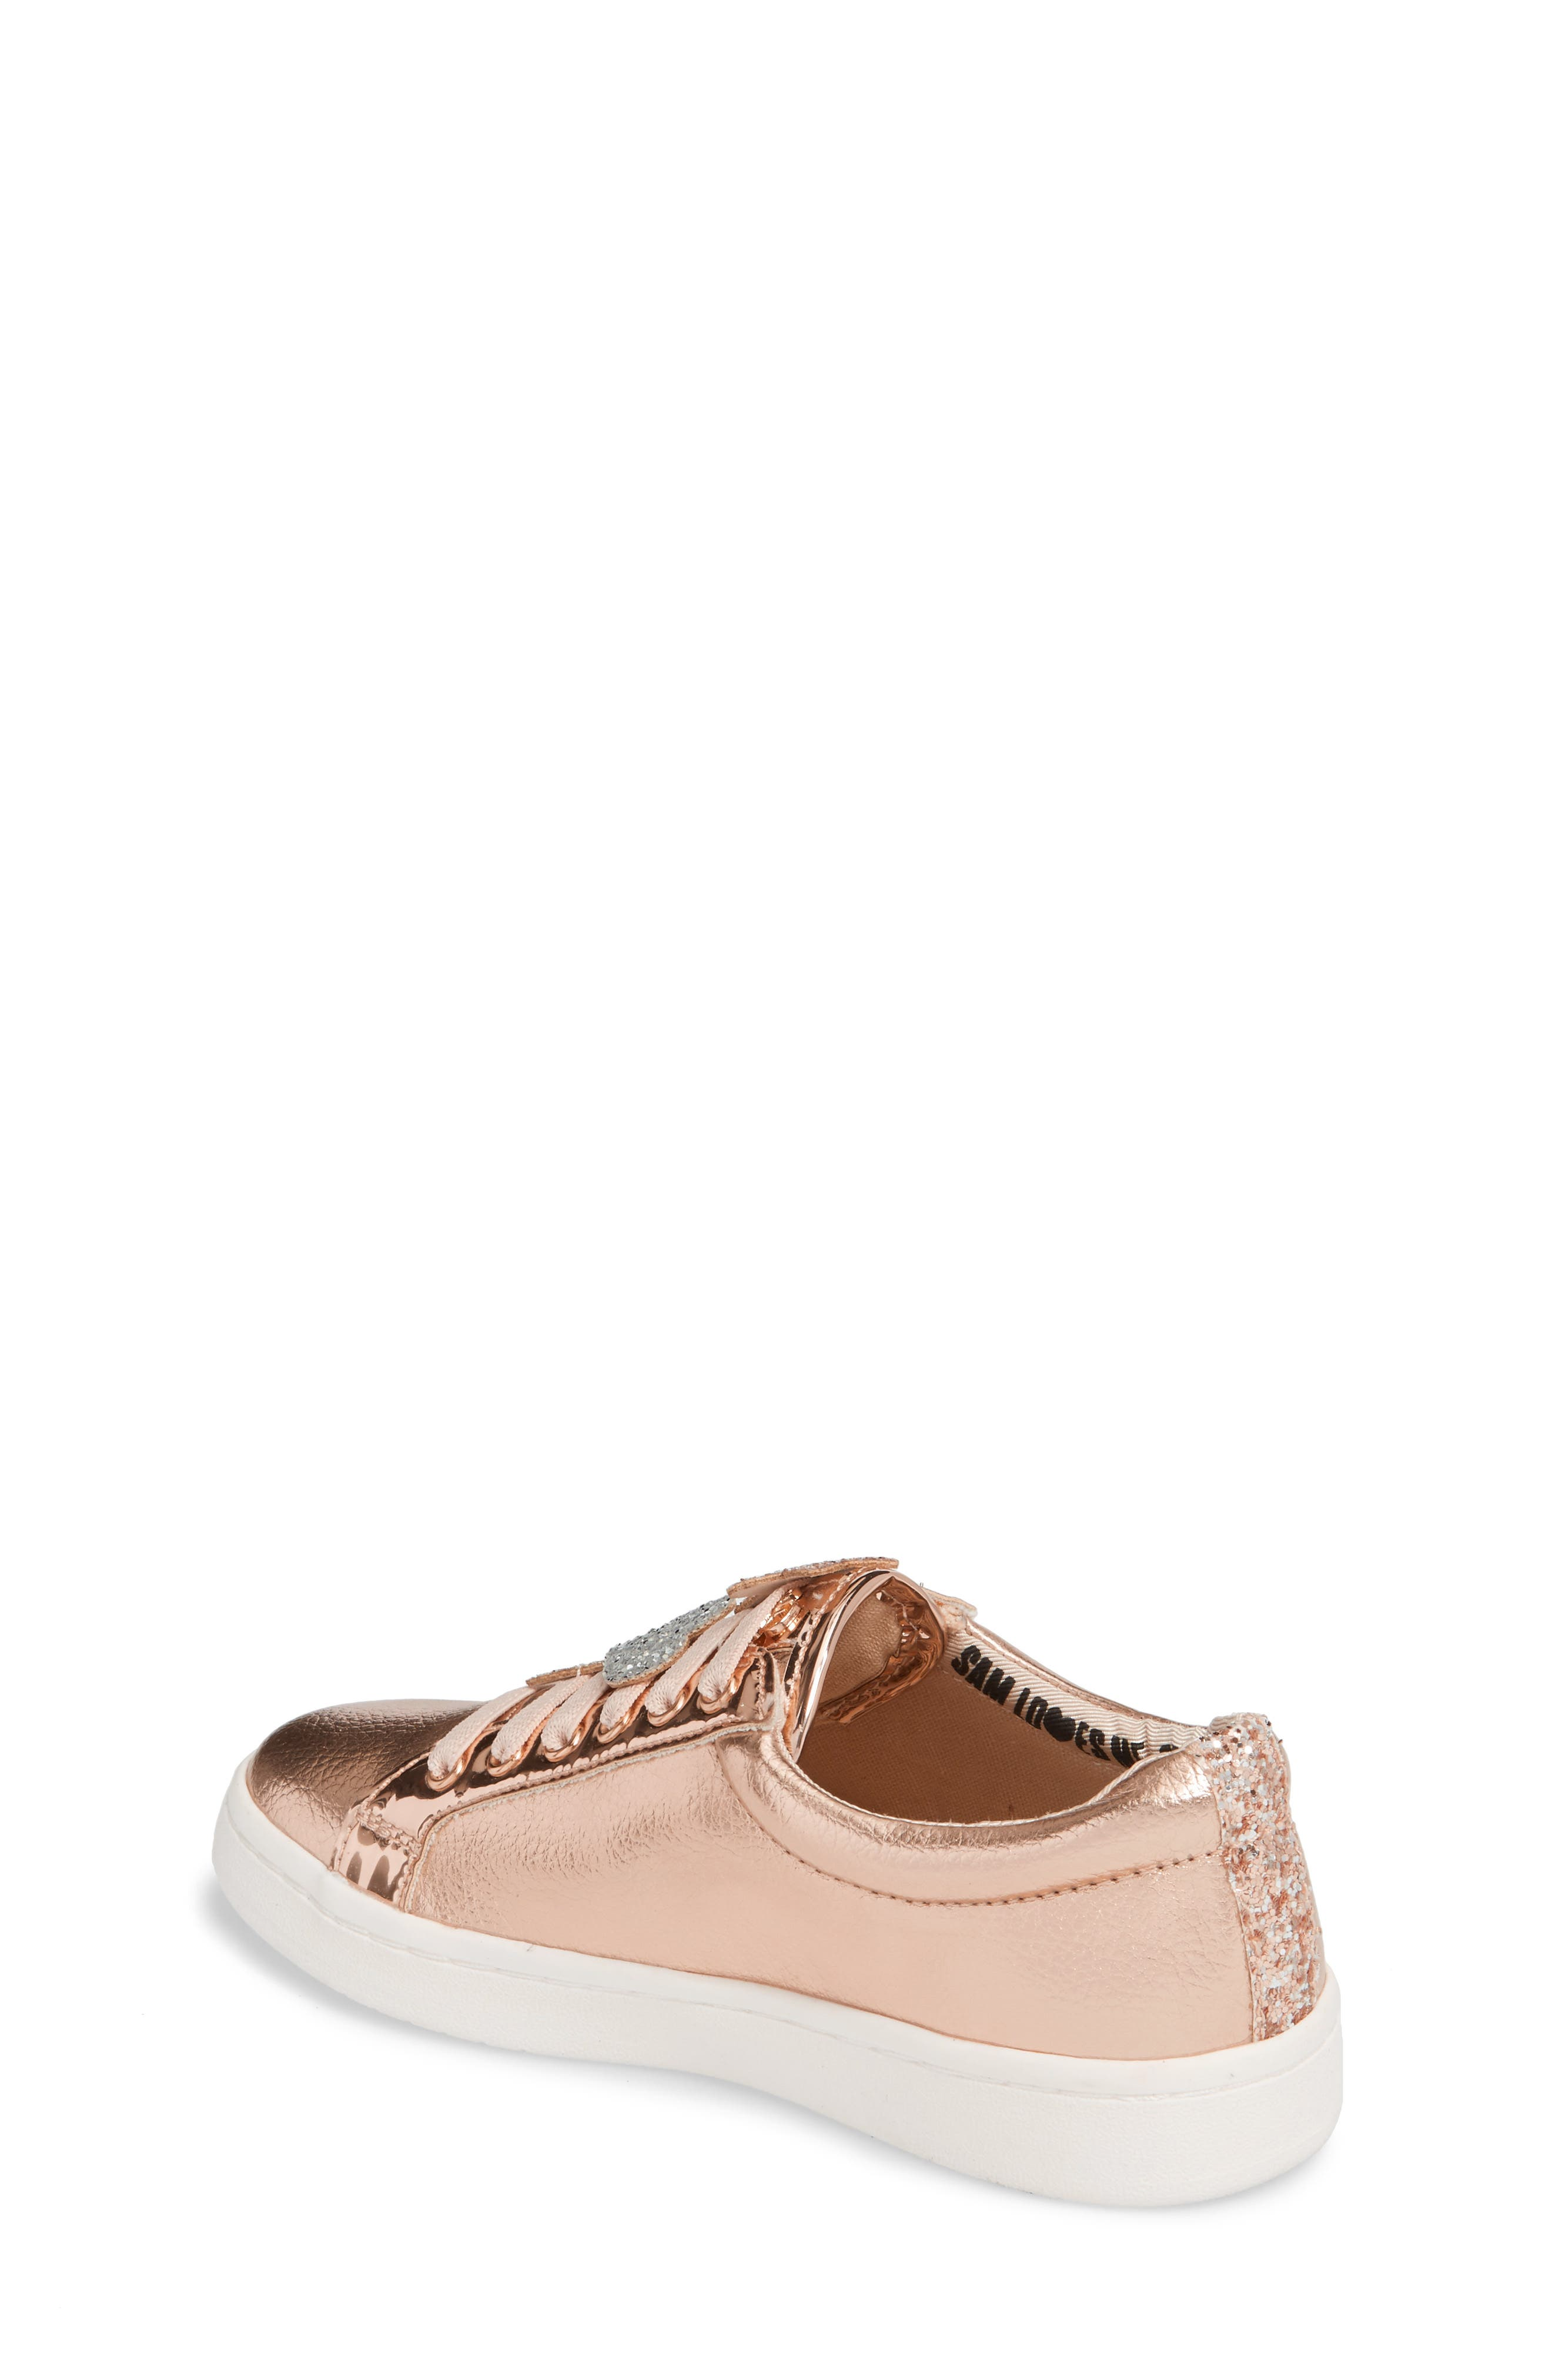 Blane Sammie Slip-On Sneaker,                             Alternate thumbnail 2, color,                             Rose Gold Faux Leather